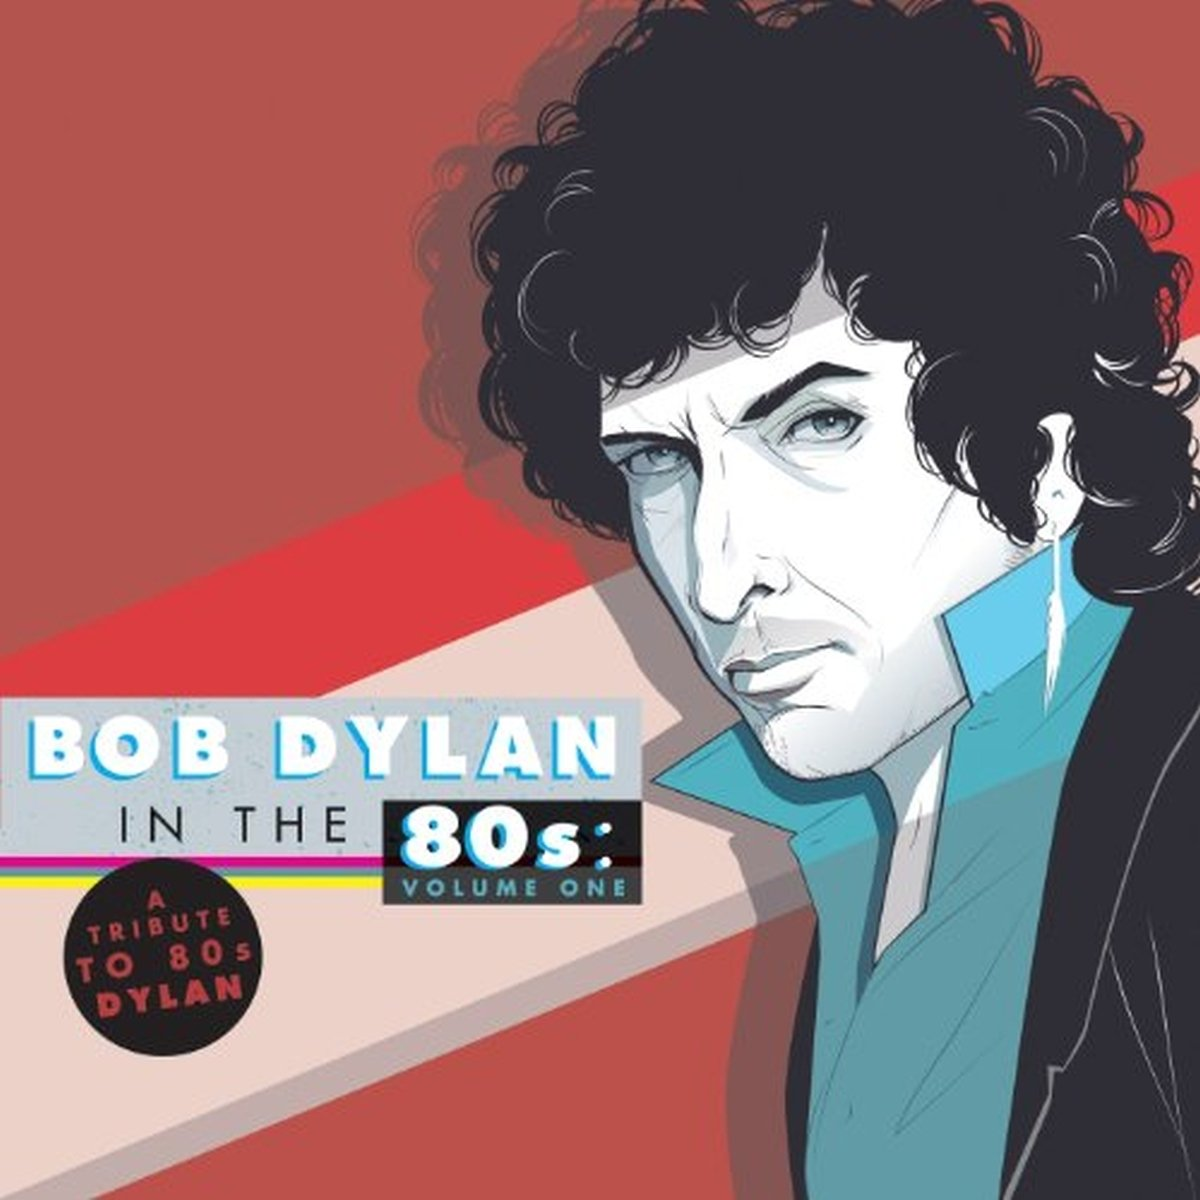 A Tribute To Bob Dylan In The 80s: Volume 1 [2 LP]